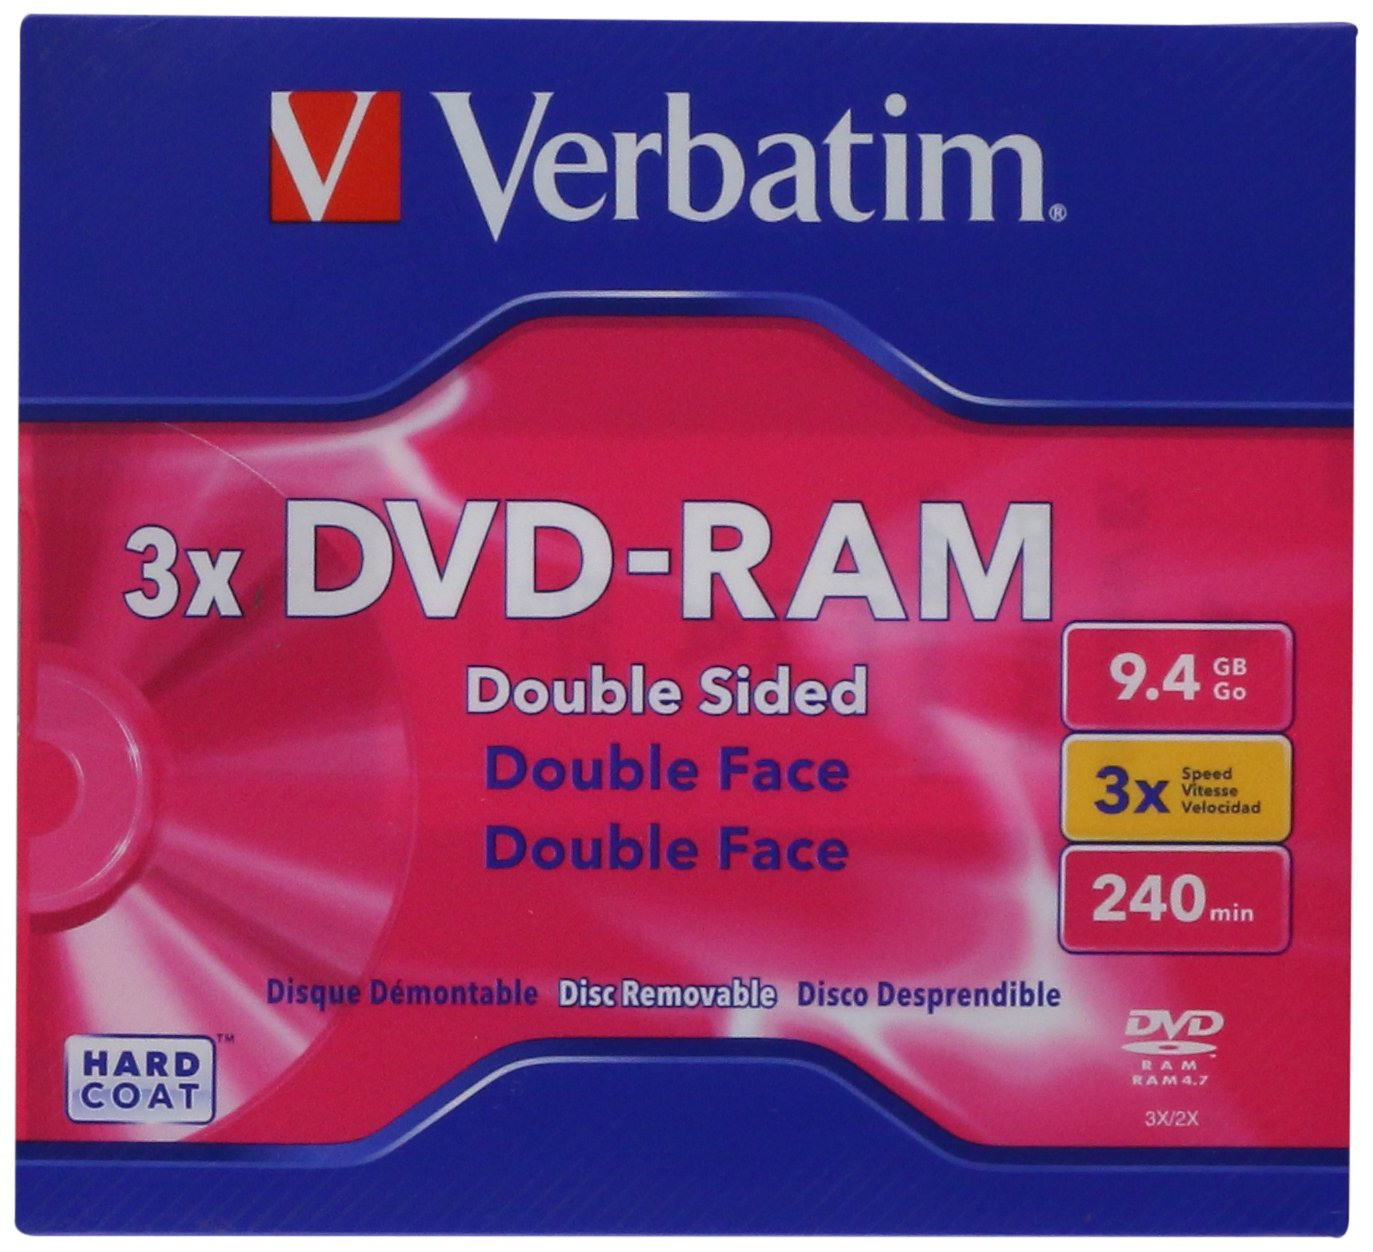 Verbatim DVD-RAM 9.4GB 3X Double Sided, Type 4 with Branded Surface - 1pk with Cartridge